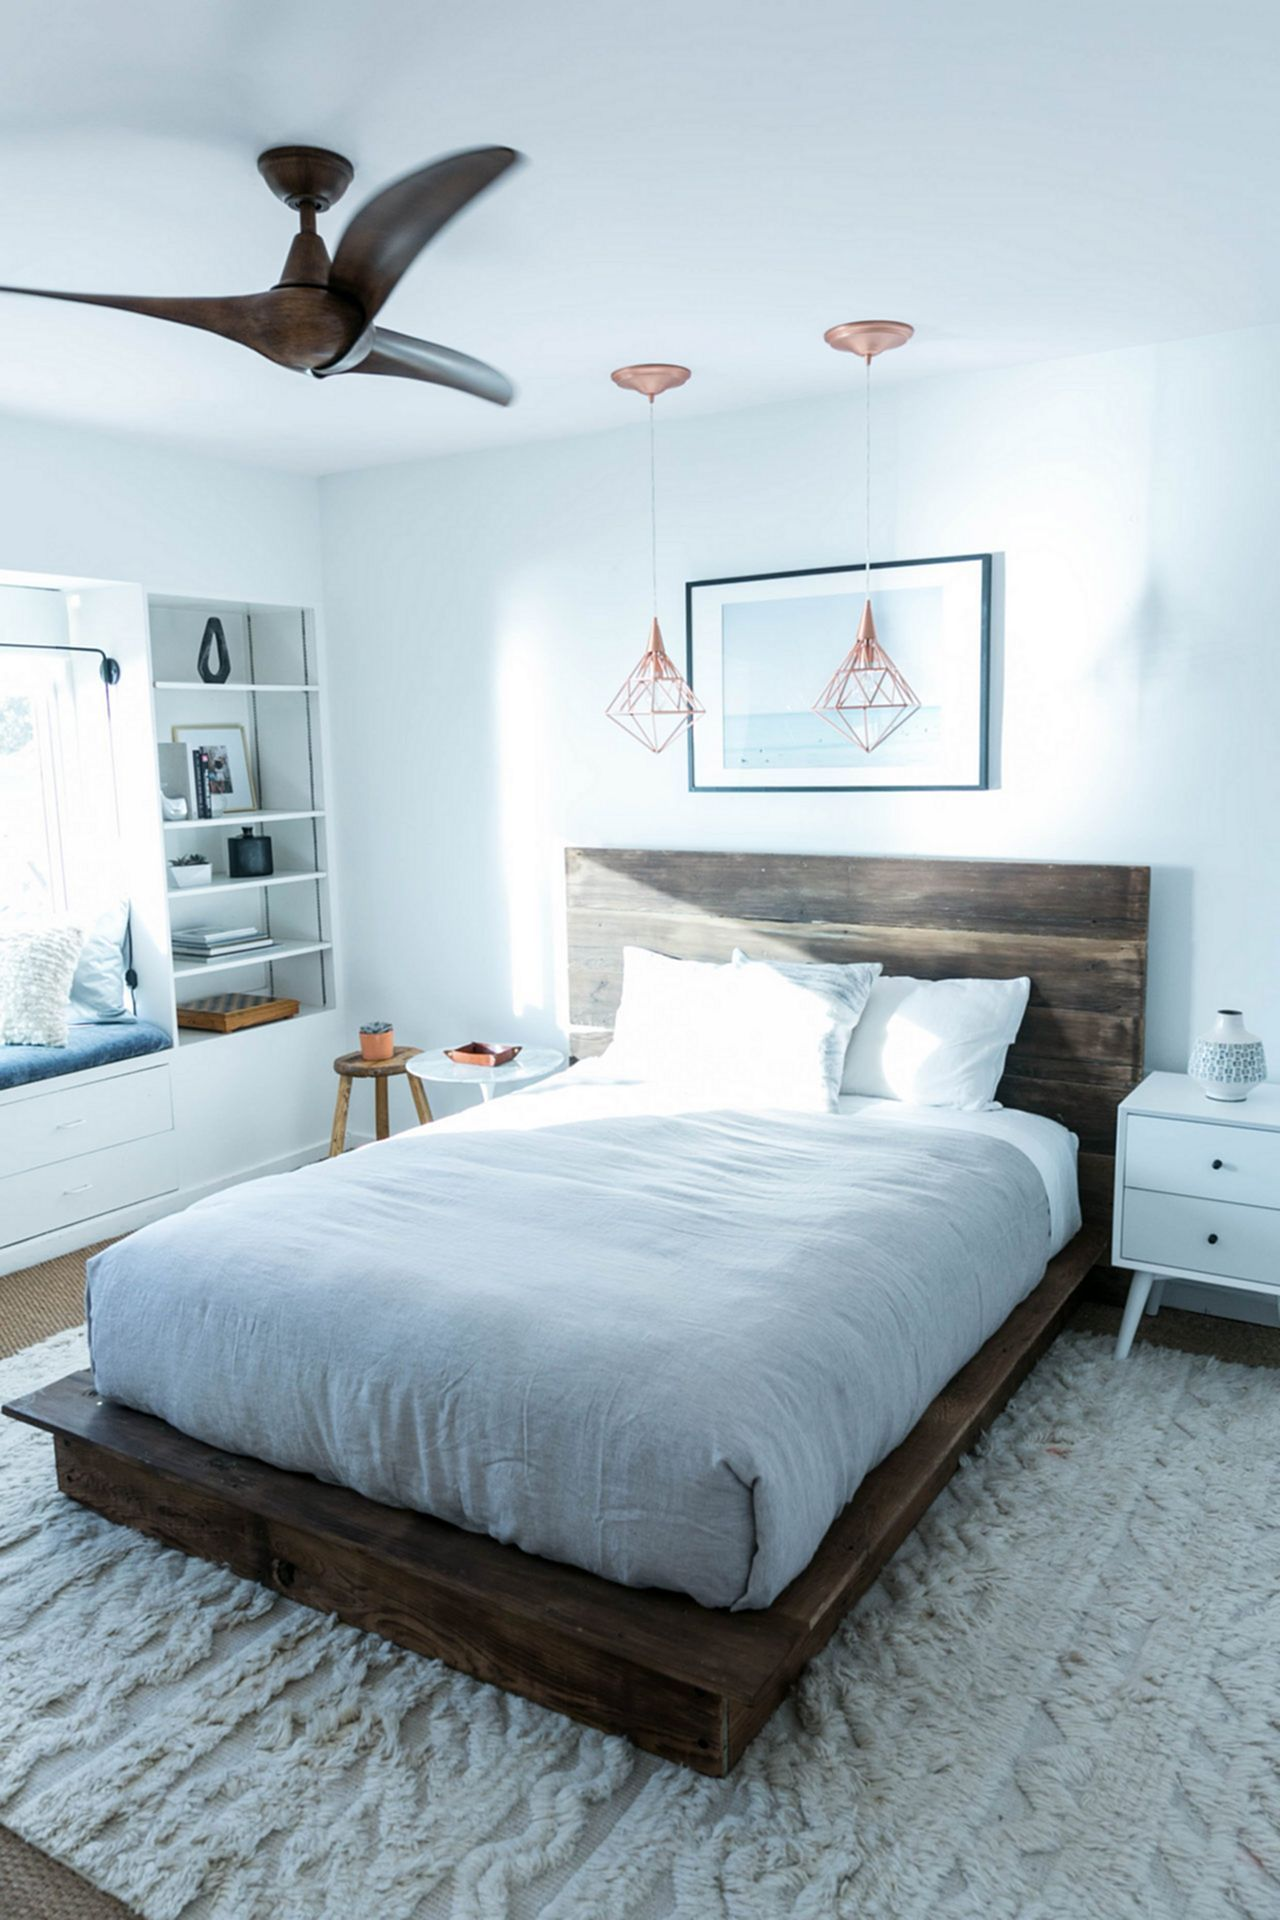 Impressive 5+ Best Wood bed Ideas For Traditional House http